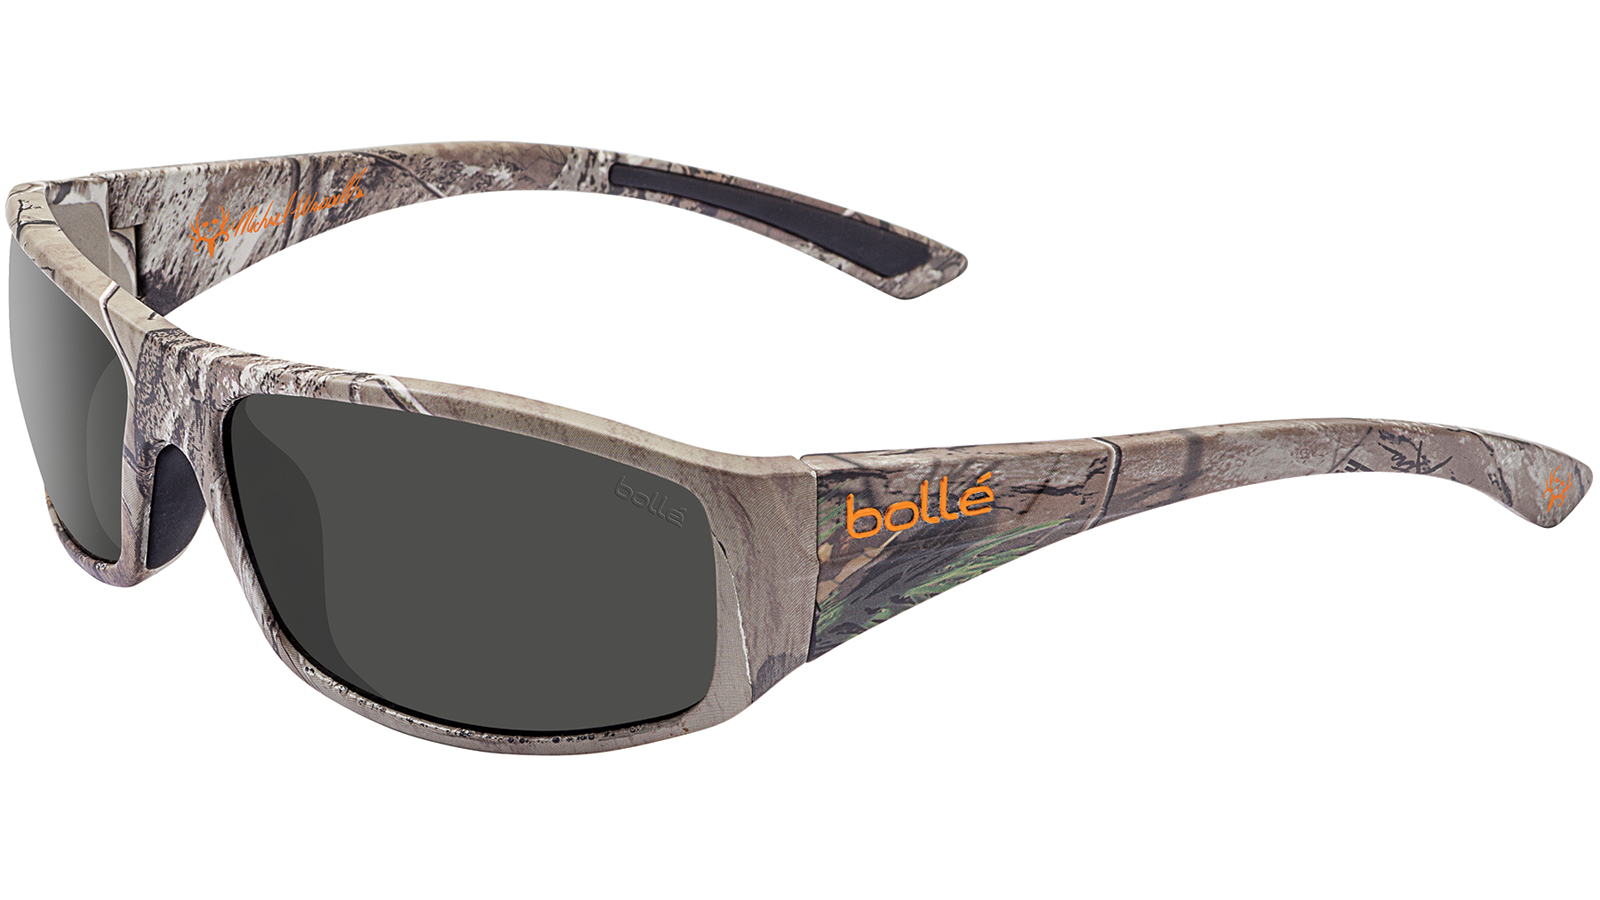 Bolle 12041 Weaver Shooting|Sporting Glasses Realtree Xtra